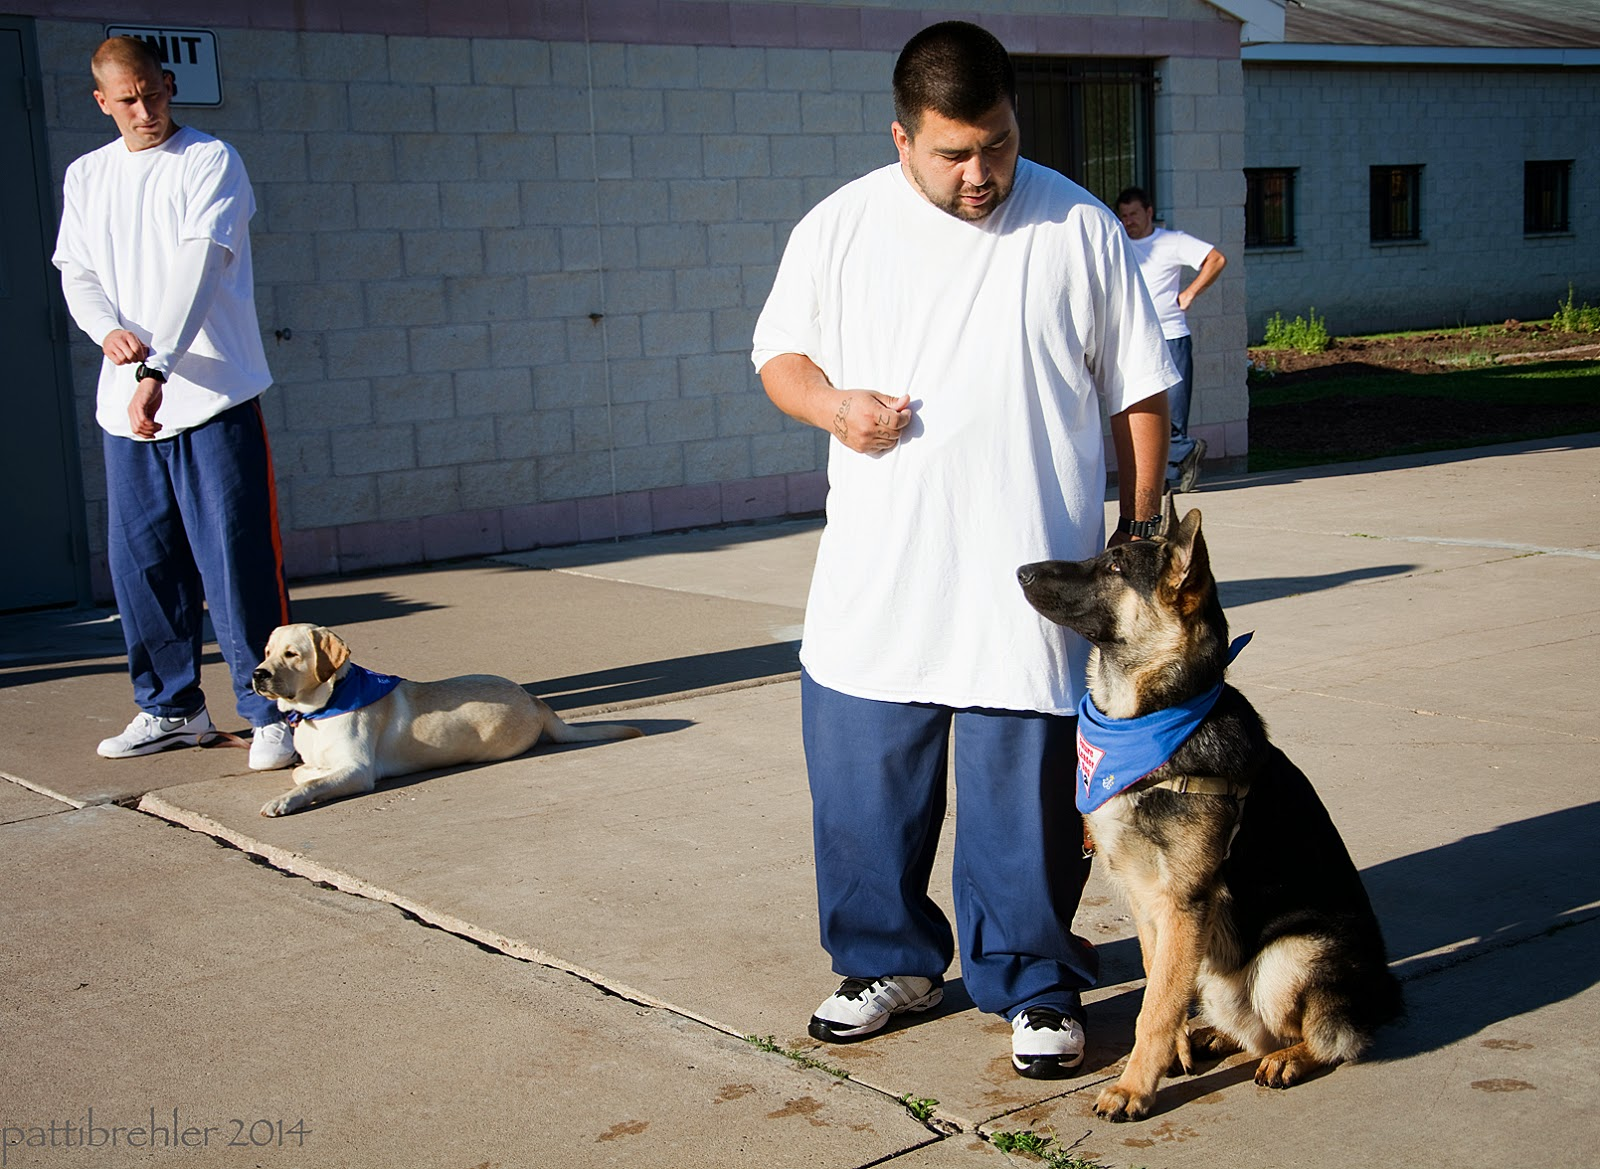 Two men stand facing left with their puppies at their left side, both are wearing blue prison pants and white t-shirts. The man on the far left has his hands crossed in front of him; his yellow lab puppy is lying on the cement next to him, and wearing the blue Future Leader Dog bandana. The man on the right, closest to the camera is holding his right arm at his waist and looking down at his german shepherd puppy, which is sitting on his left side. The german shepherd is wearing the blue Future Leader Dog bandana and is looking at the man's right hand. The man's left hand is at his side holding the dog's leash. The men are in bright sunshine outside of a white brick building. A man is standing in a doorway in the far distance behind the man on the right.